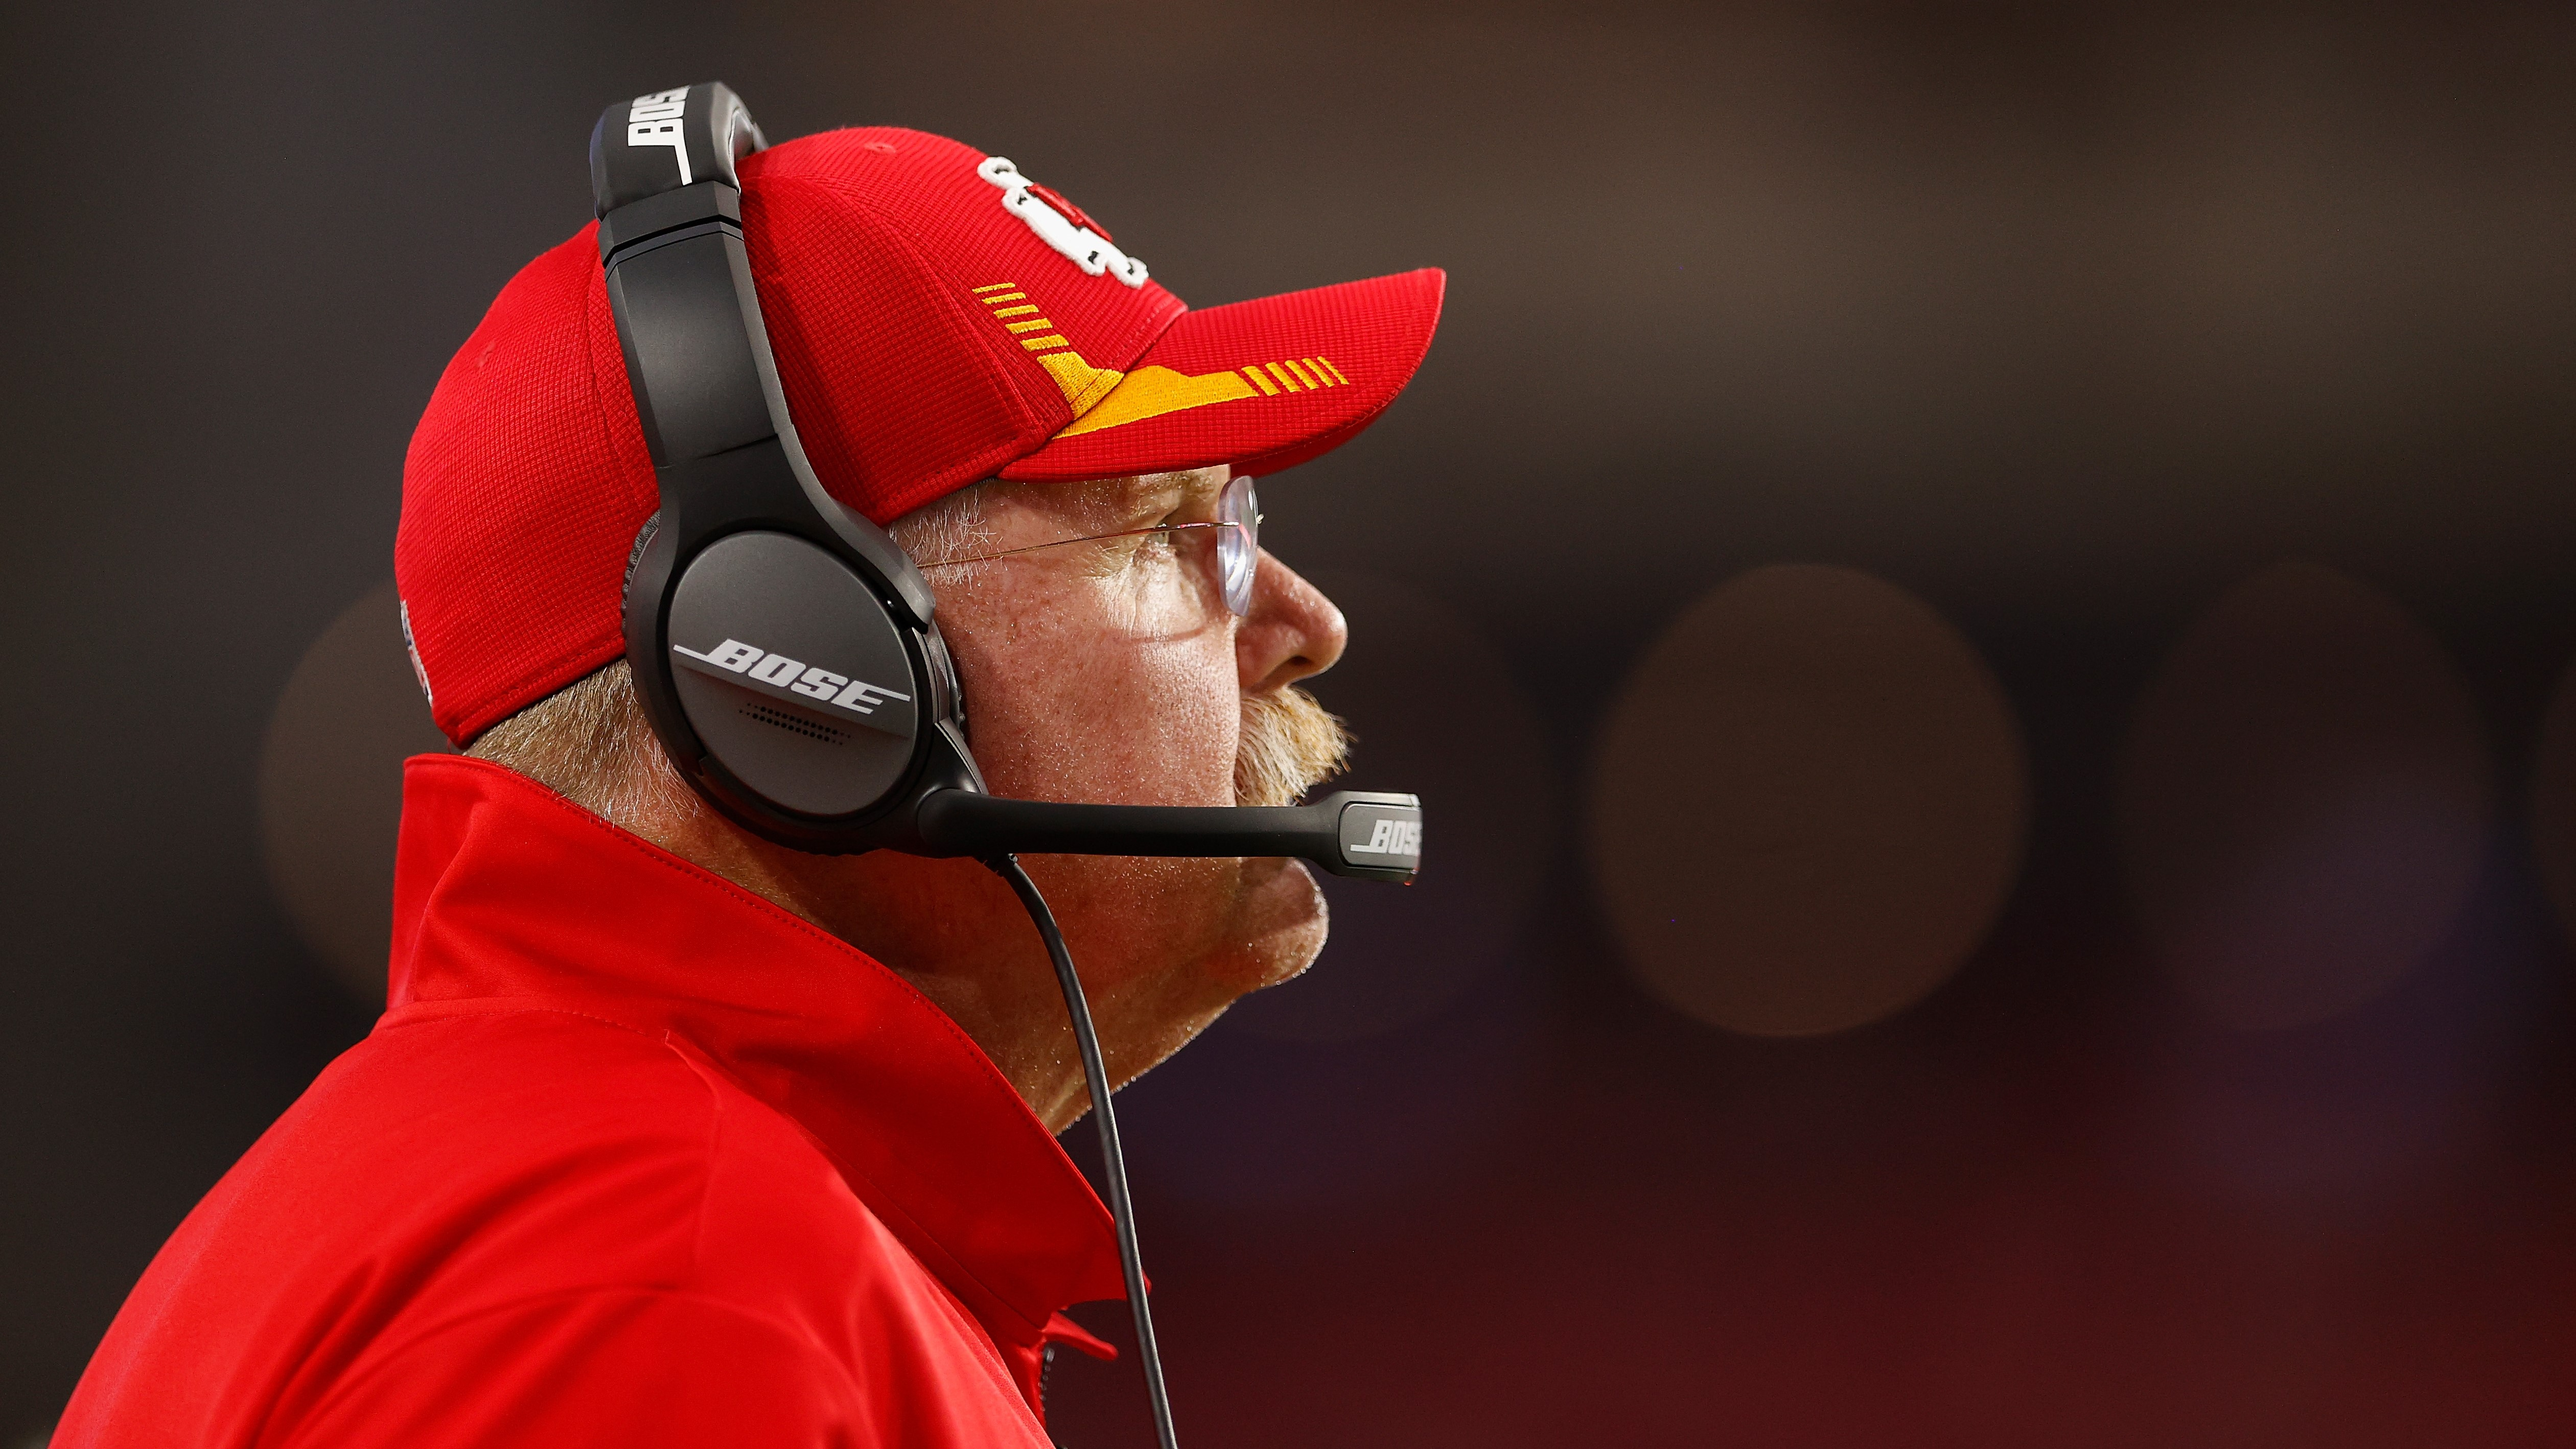 Andy Reid released from hospital, is expected to be back at work Monday or Tuesday